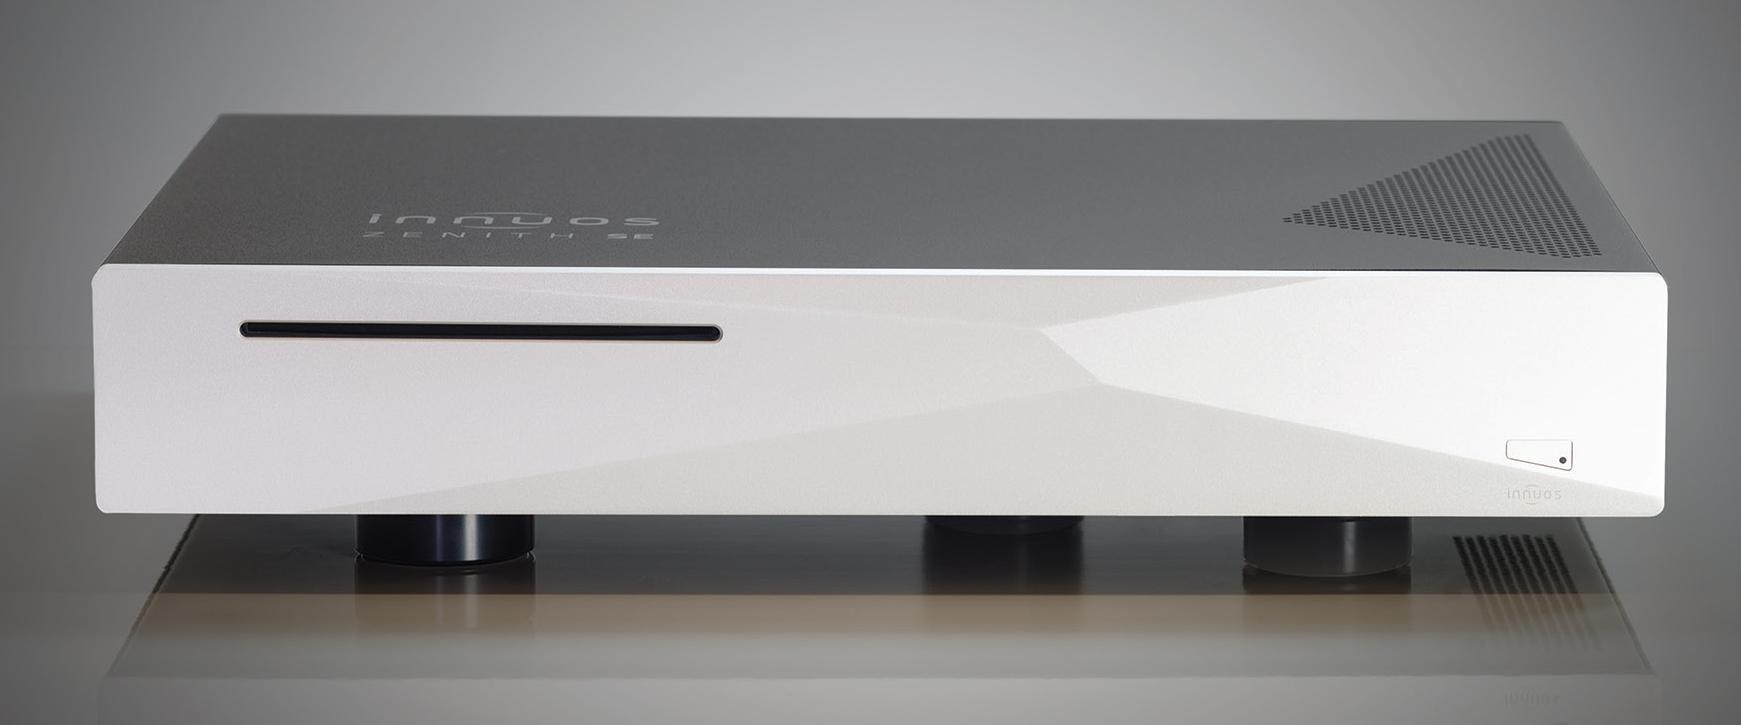 Innuos zenith special edition musikserver front